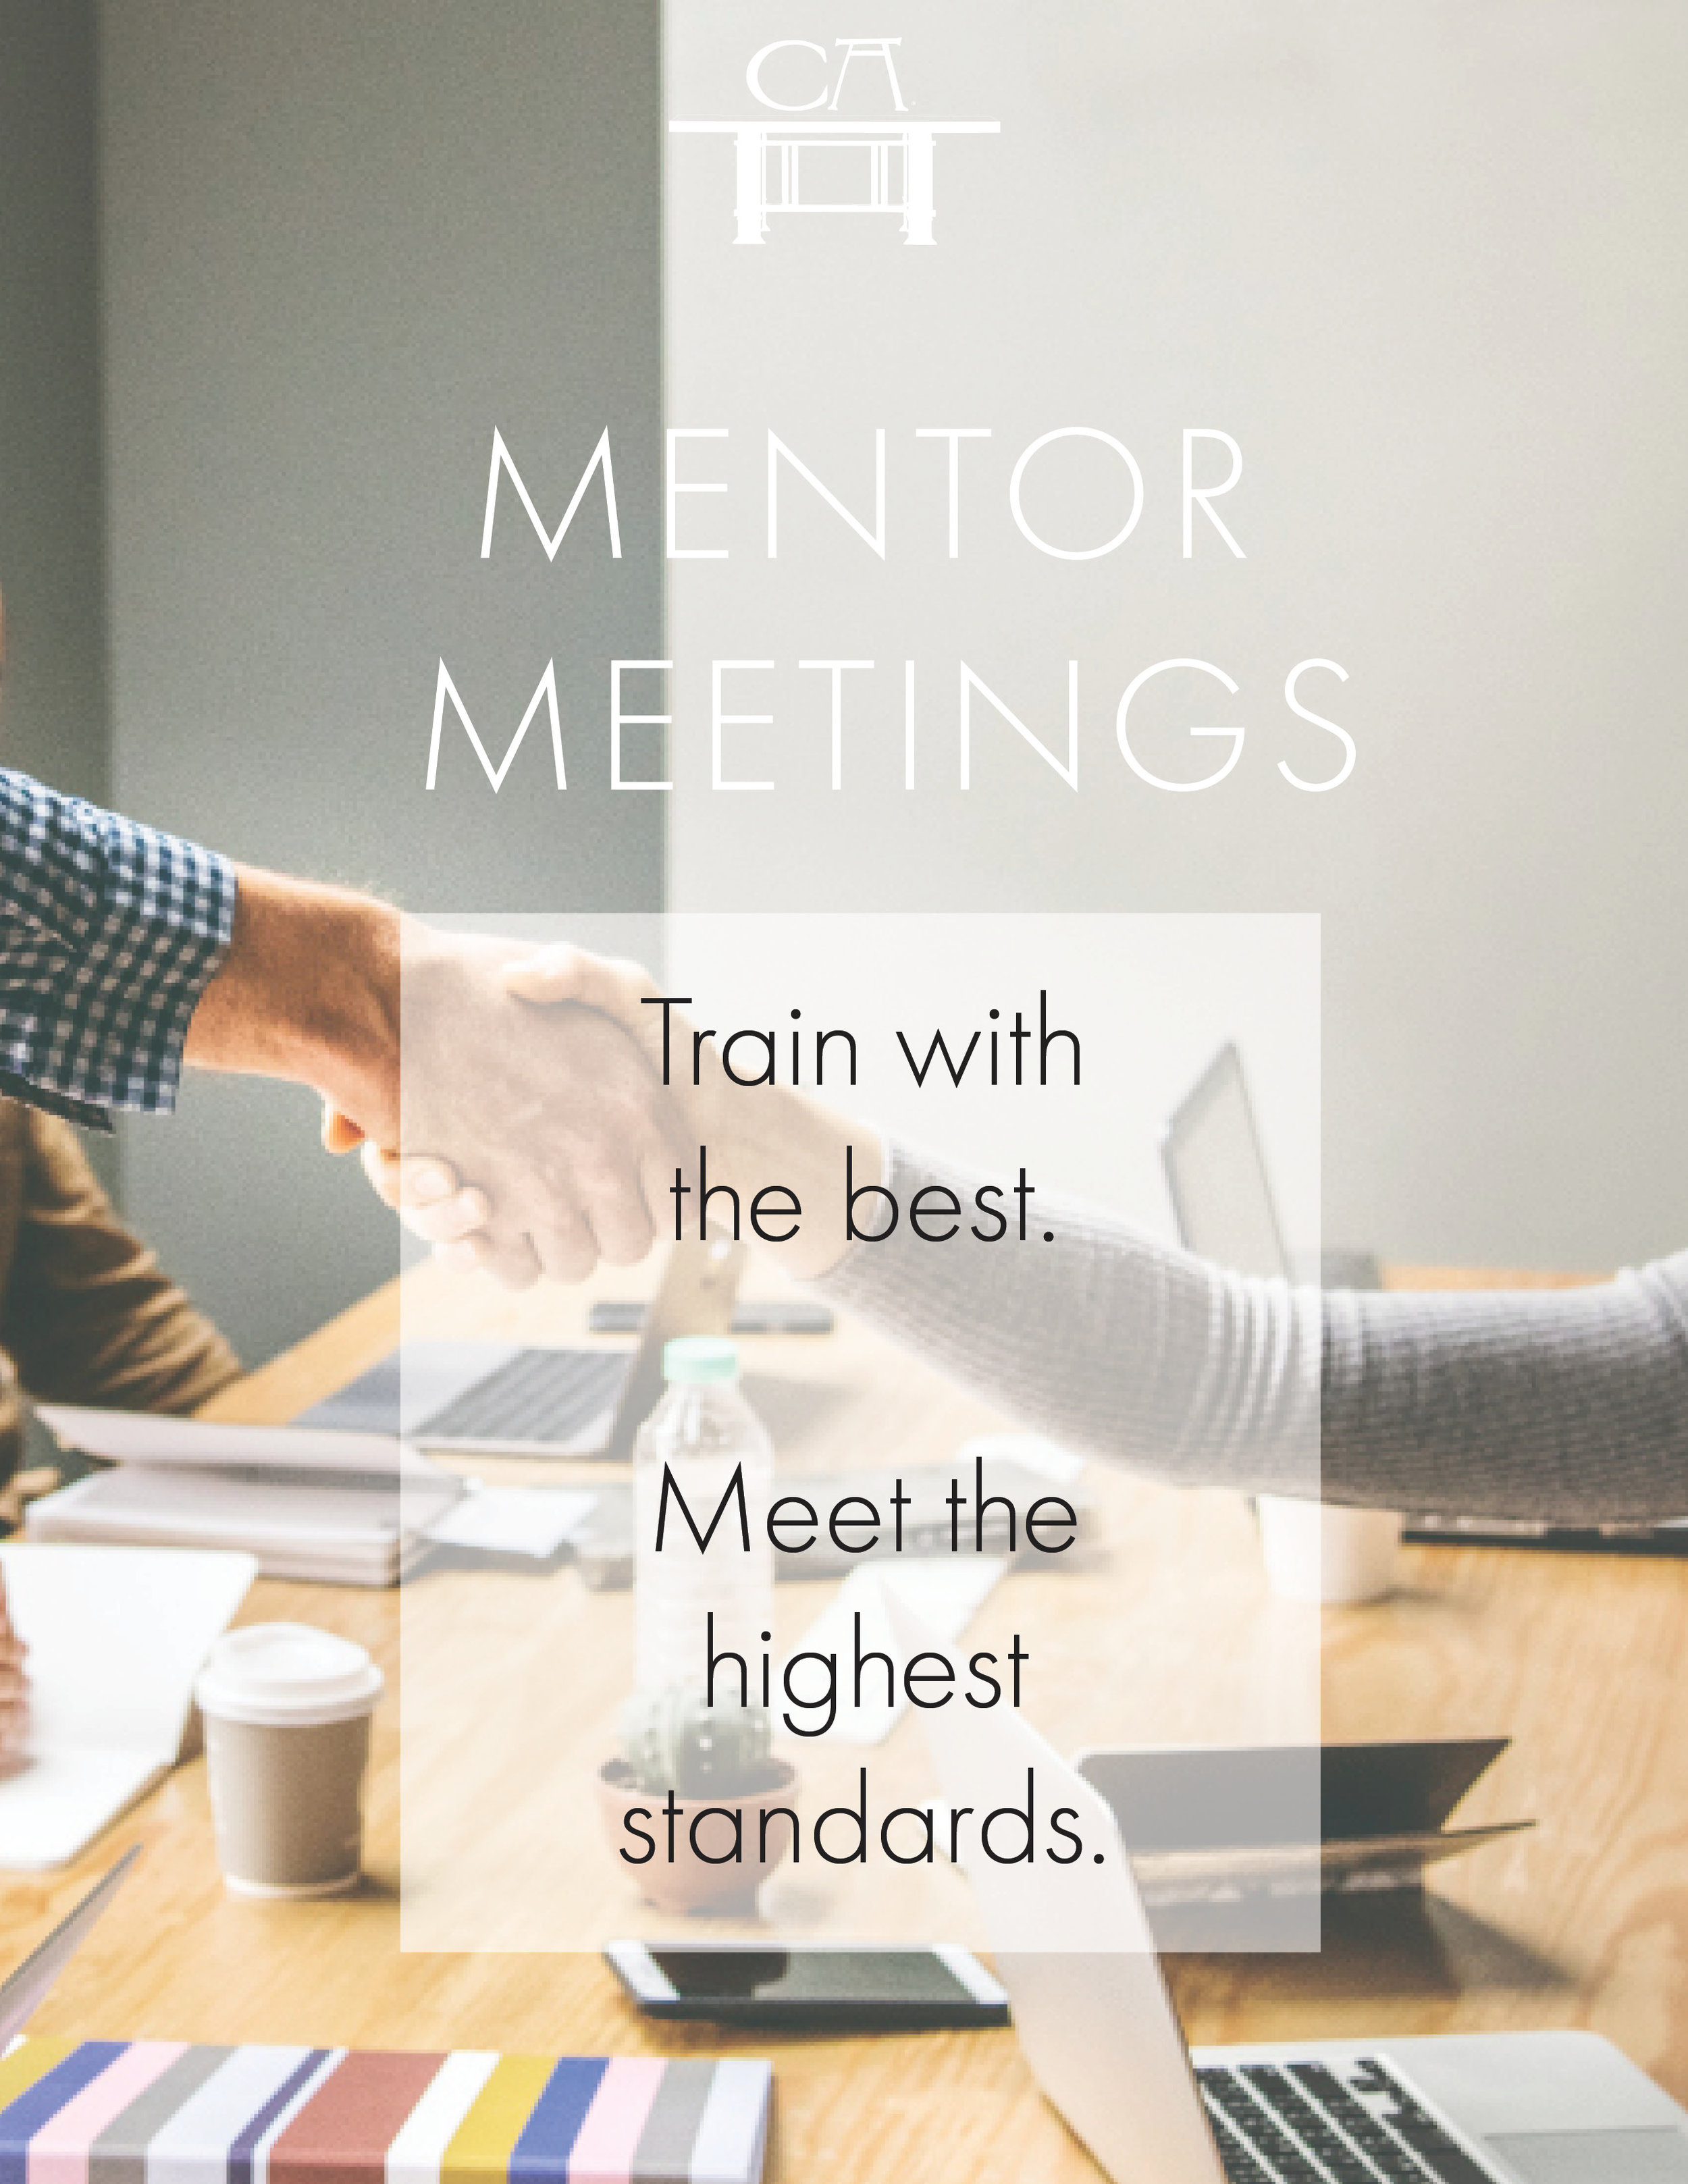 Mentor Meetings - Fuel your professional development with mentoring from the best. Our Master Teachers bring their skills, vision, encouragement and friendship to each video conference—one-on-one for individuals at the Master level, or team meetings for teachers with a School Membership.INCLUDED